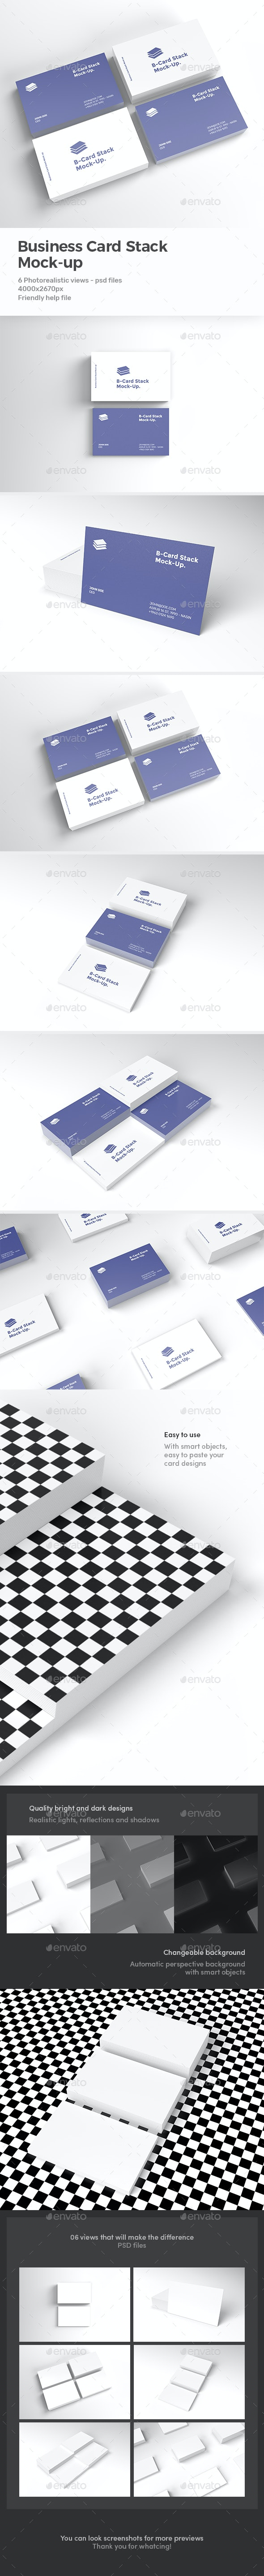 Business Card Stack Mock-up - Product Mock-Ups Graphics